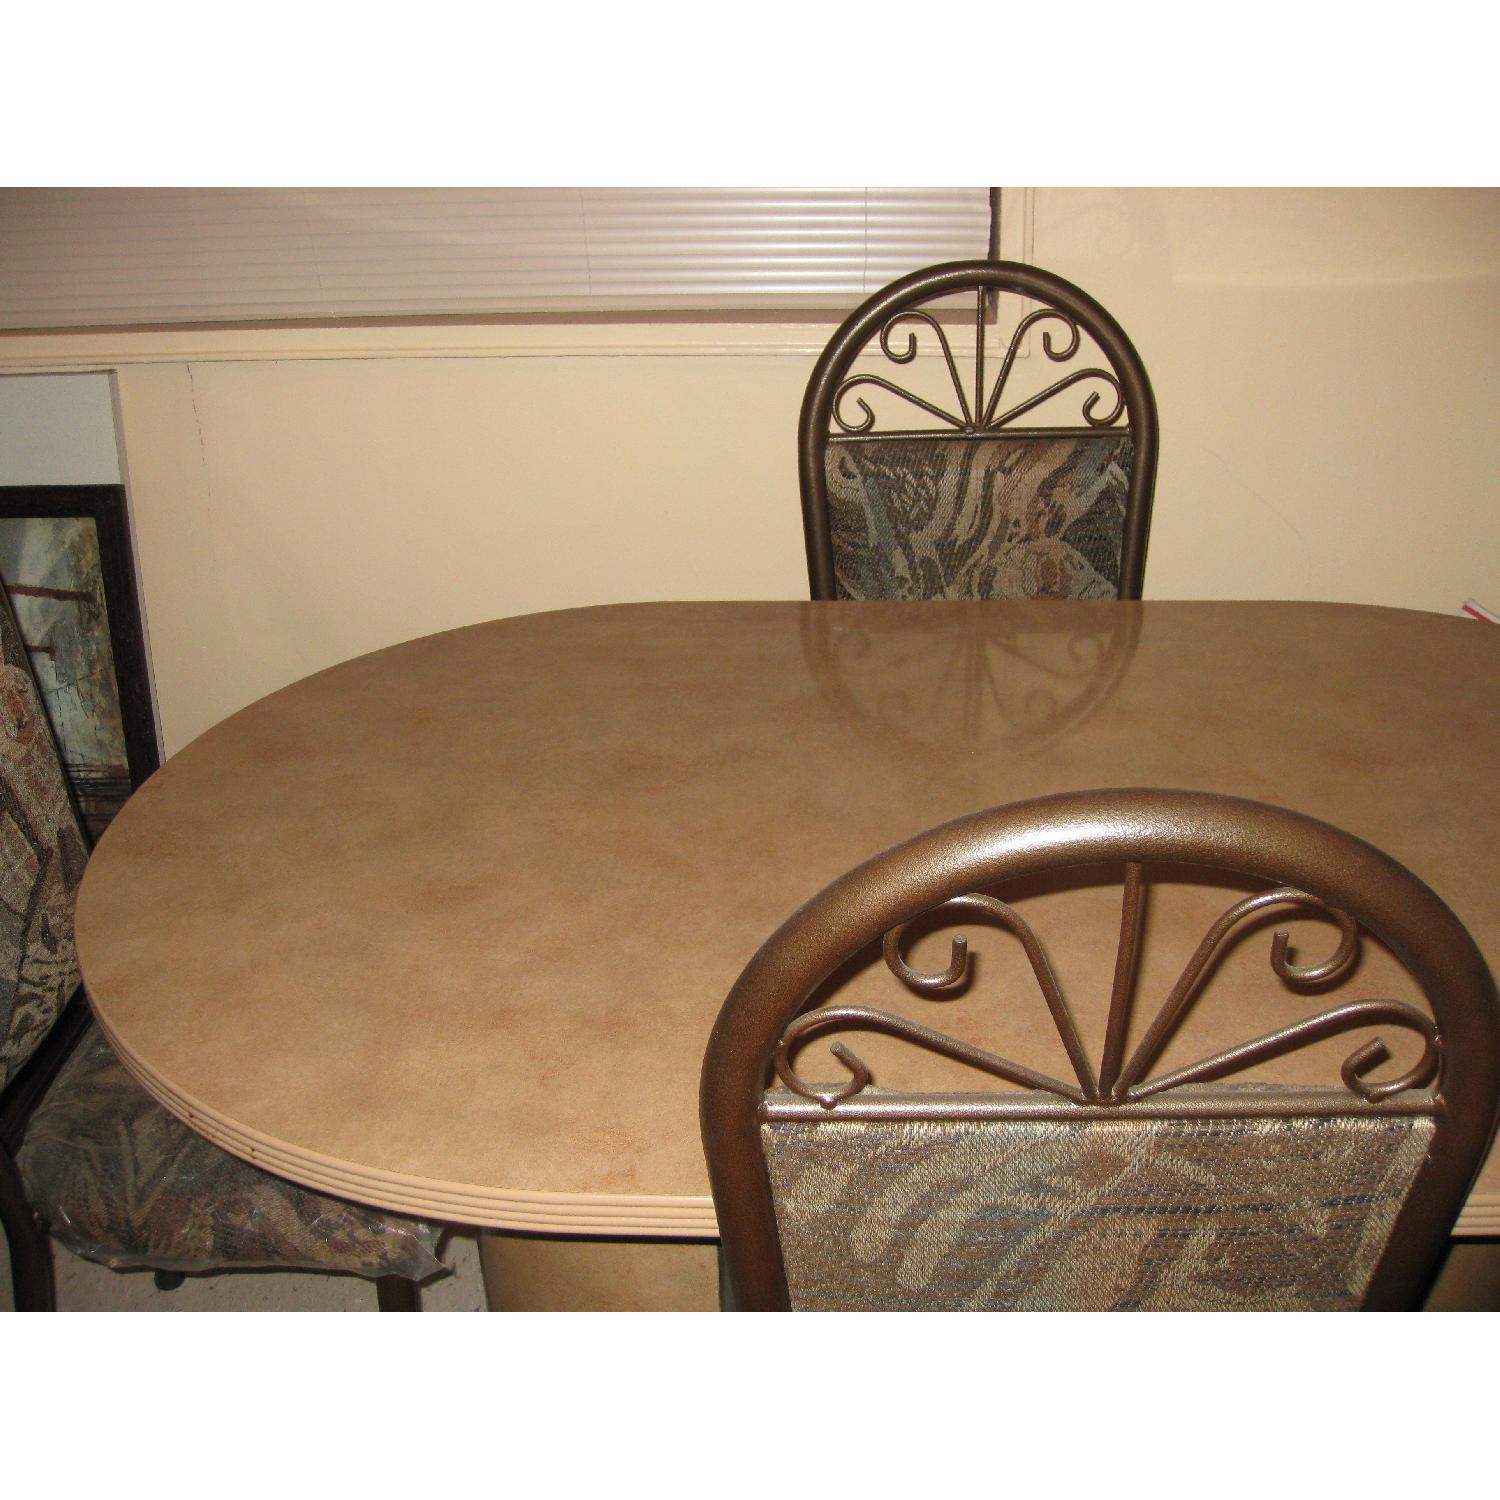 Ethan Allen Granite Marble Oval Dining Table in Brownish Tan-0